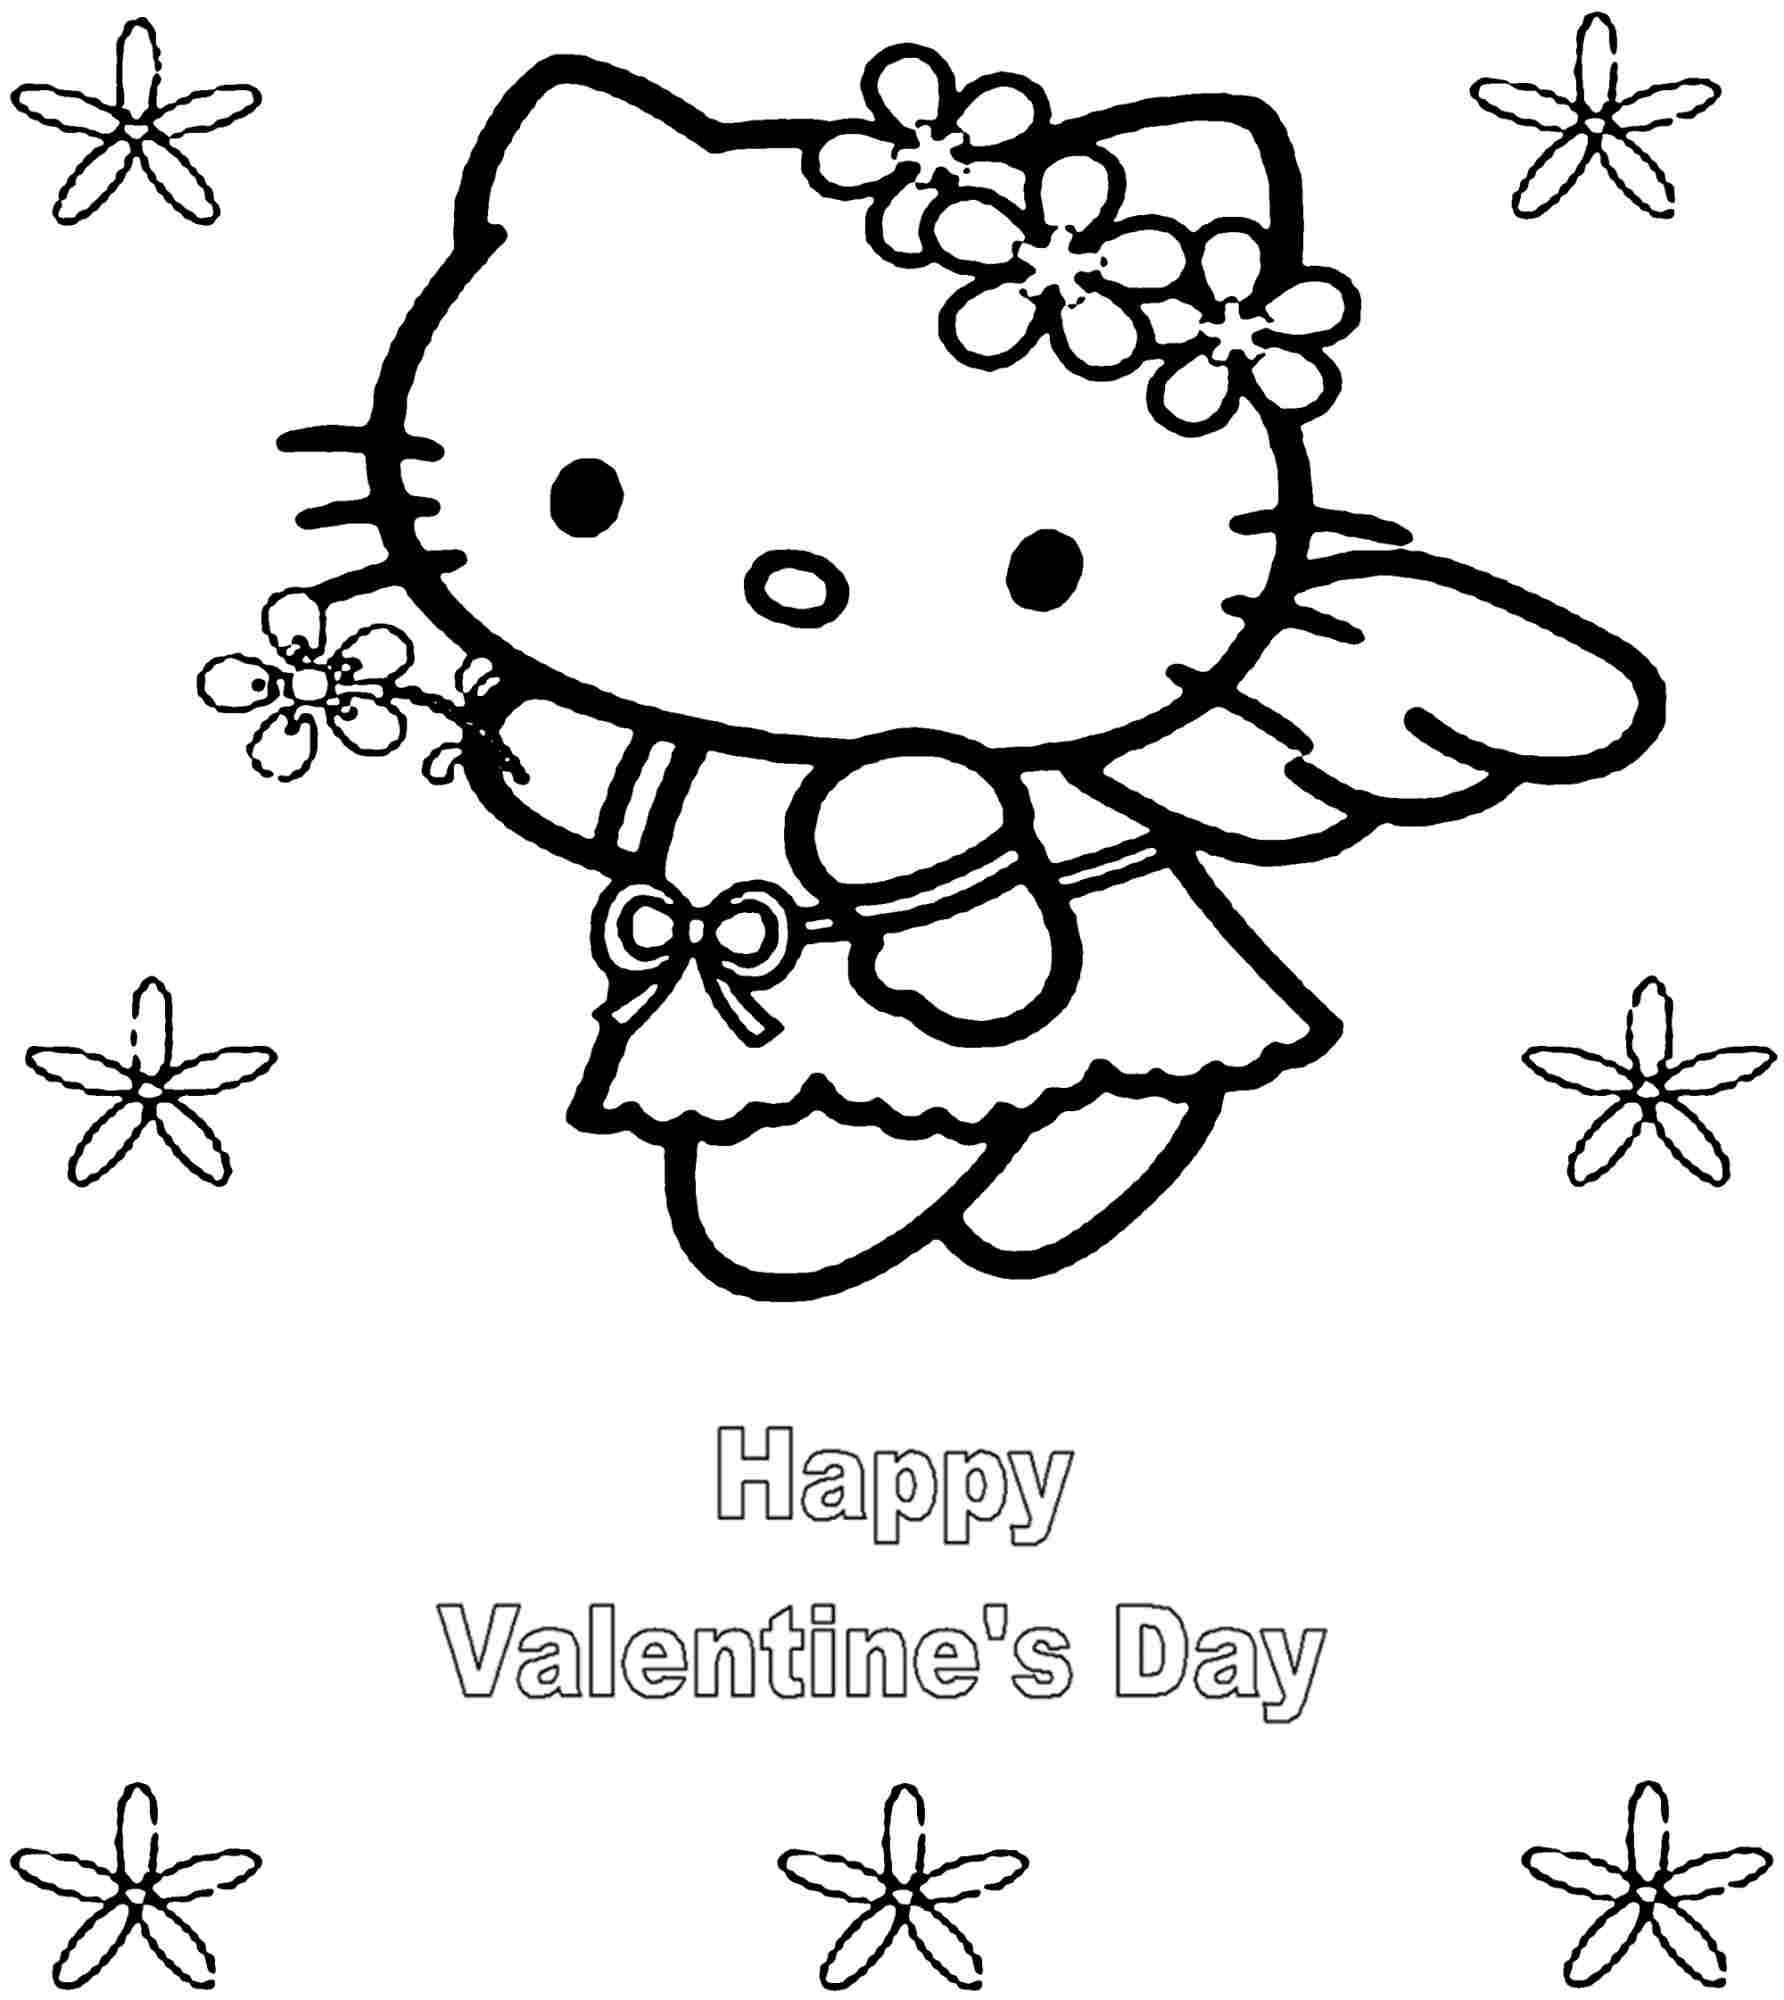 name printable hello kitty valentine coloring pages | värityskuvat ...